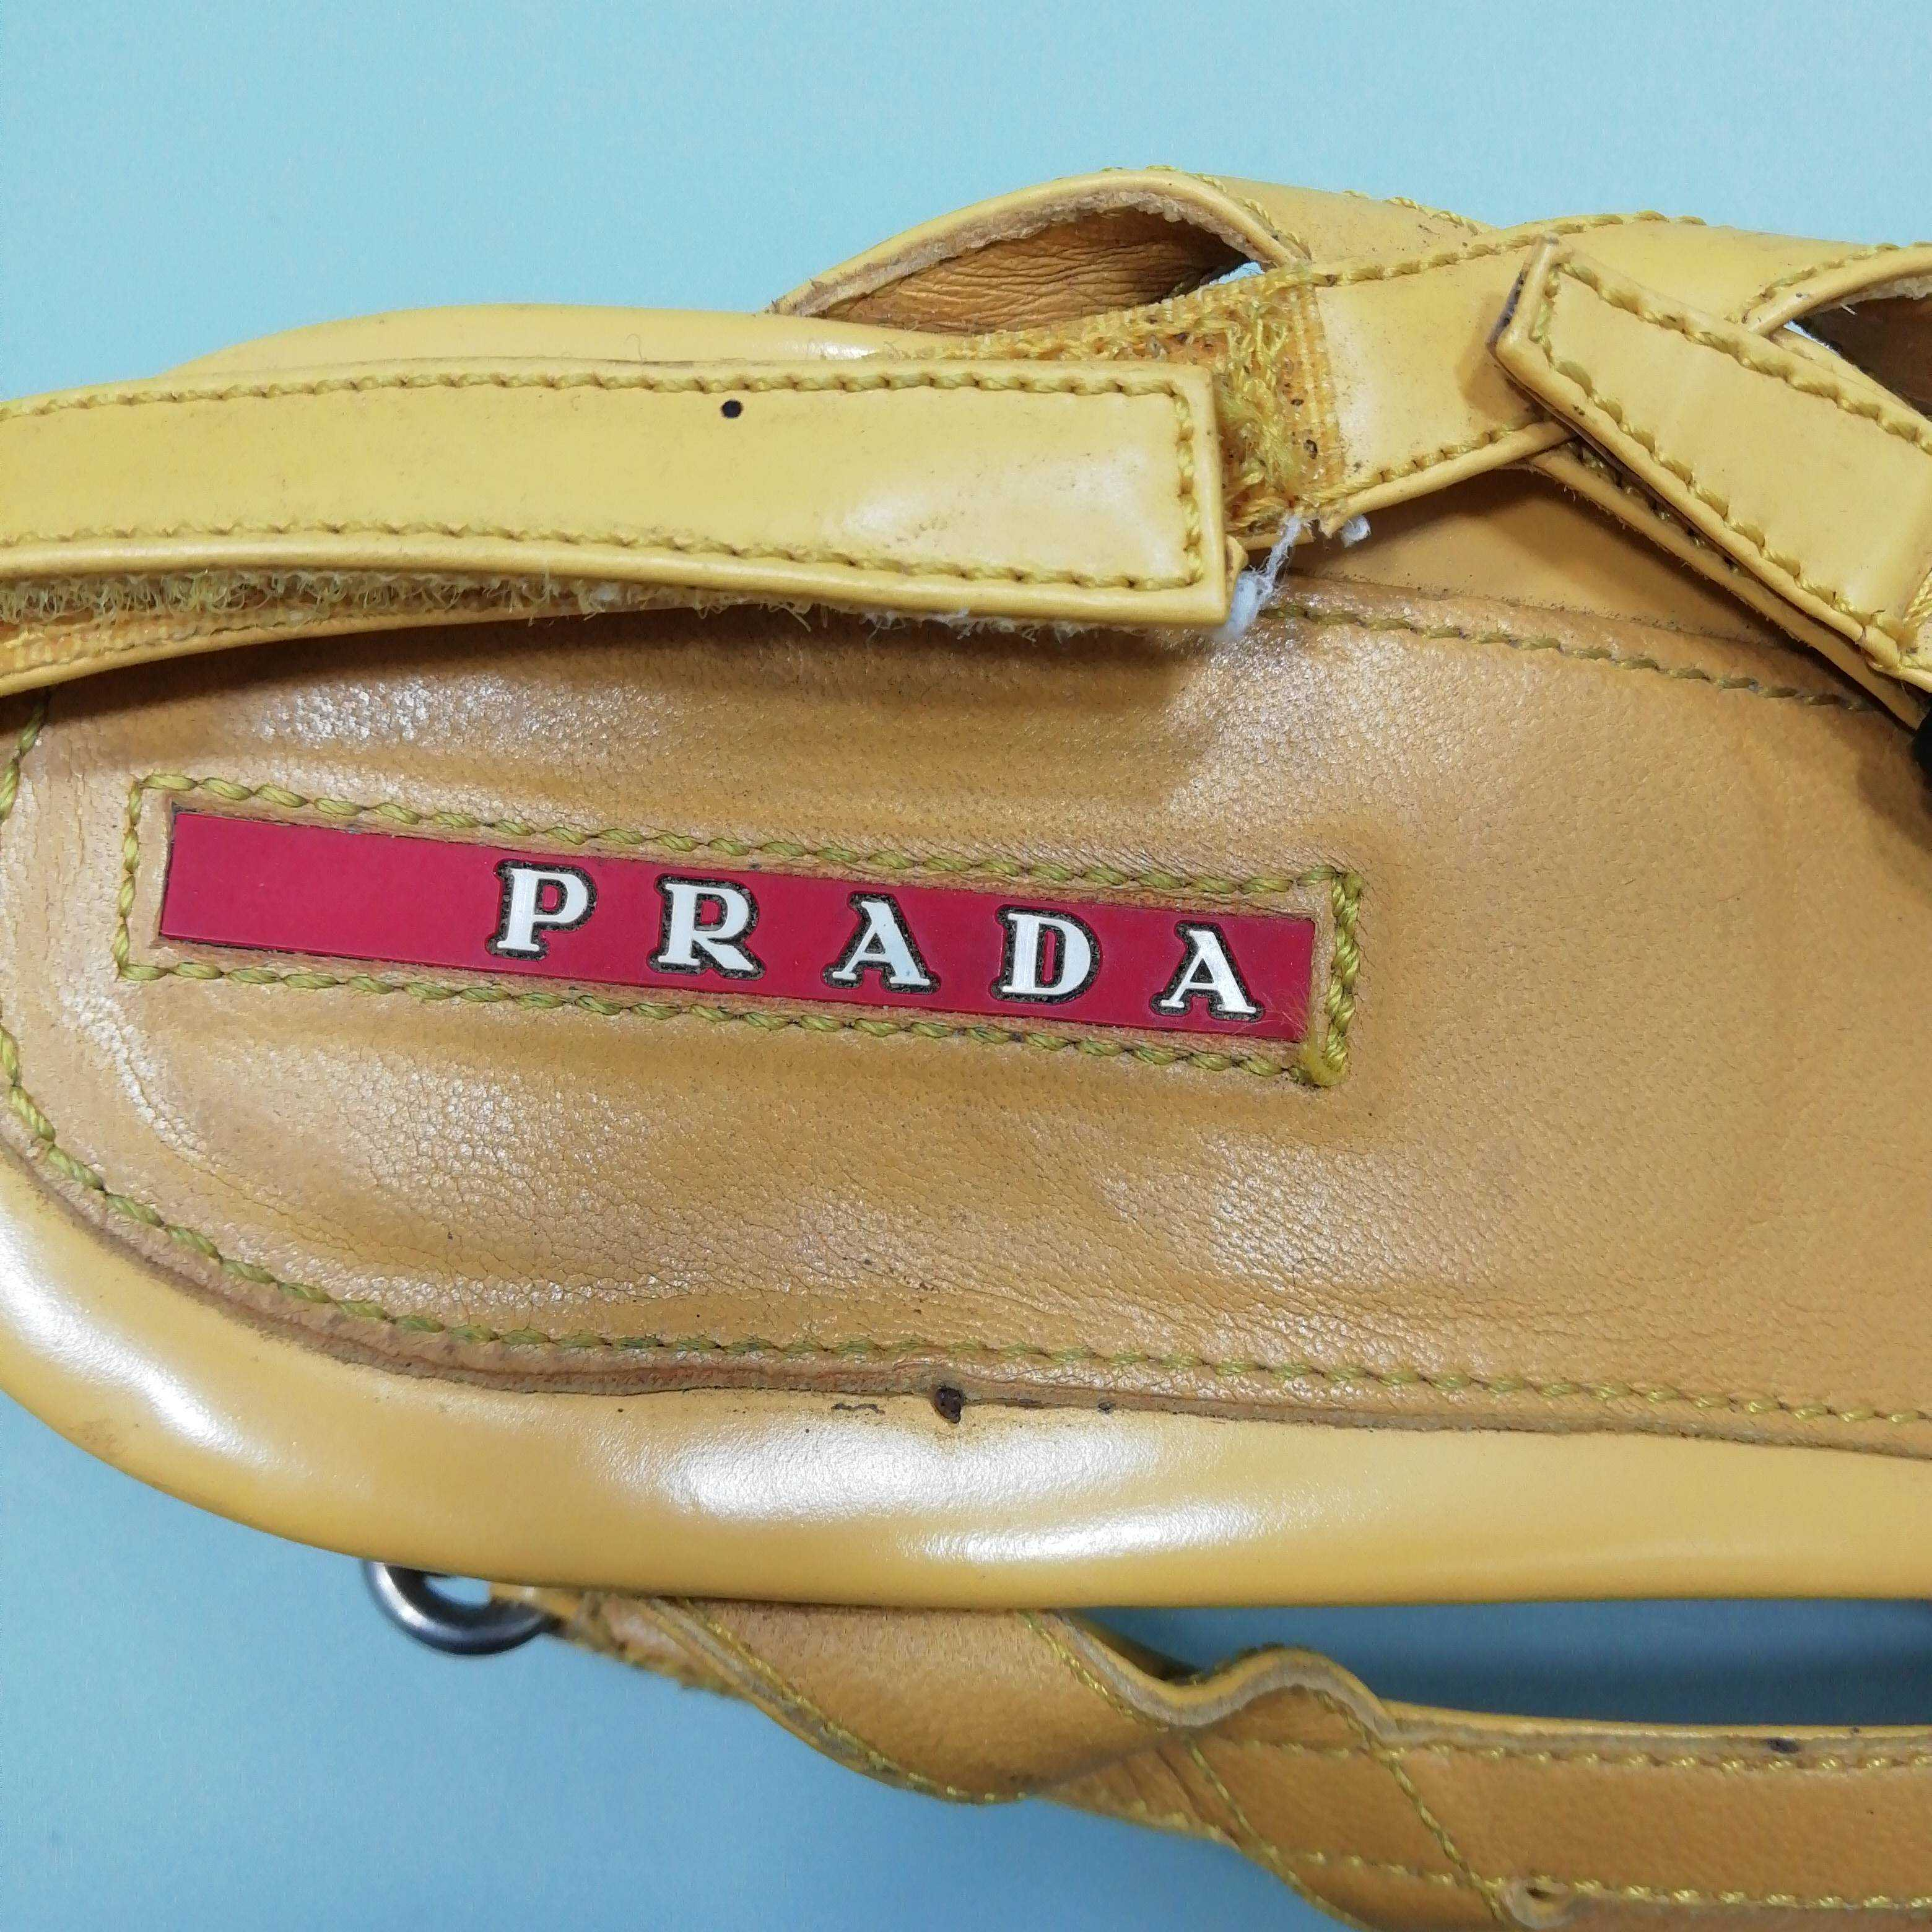 Prada Women's Sandals 7 UK 7 Colour: Yellow